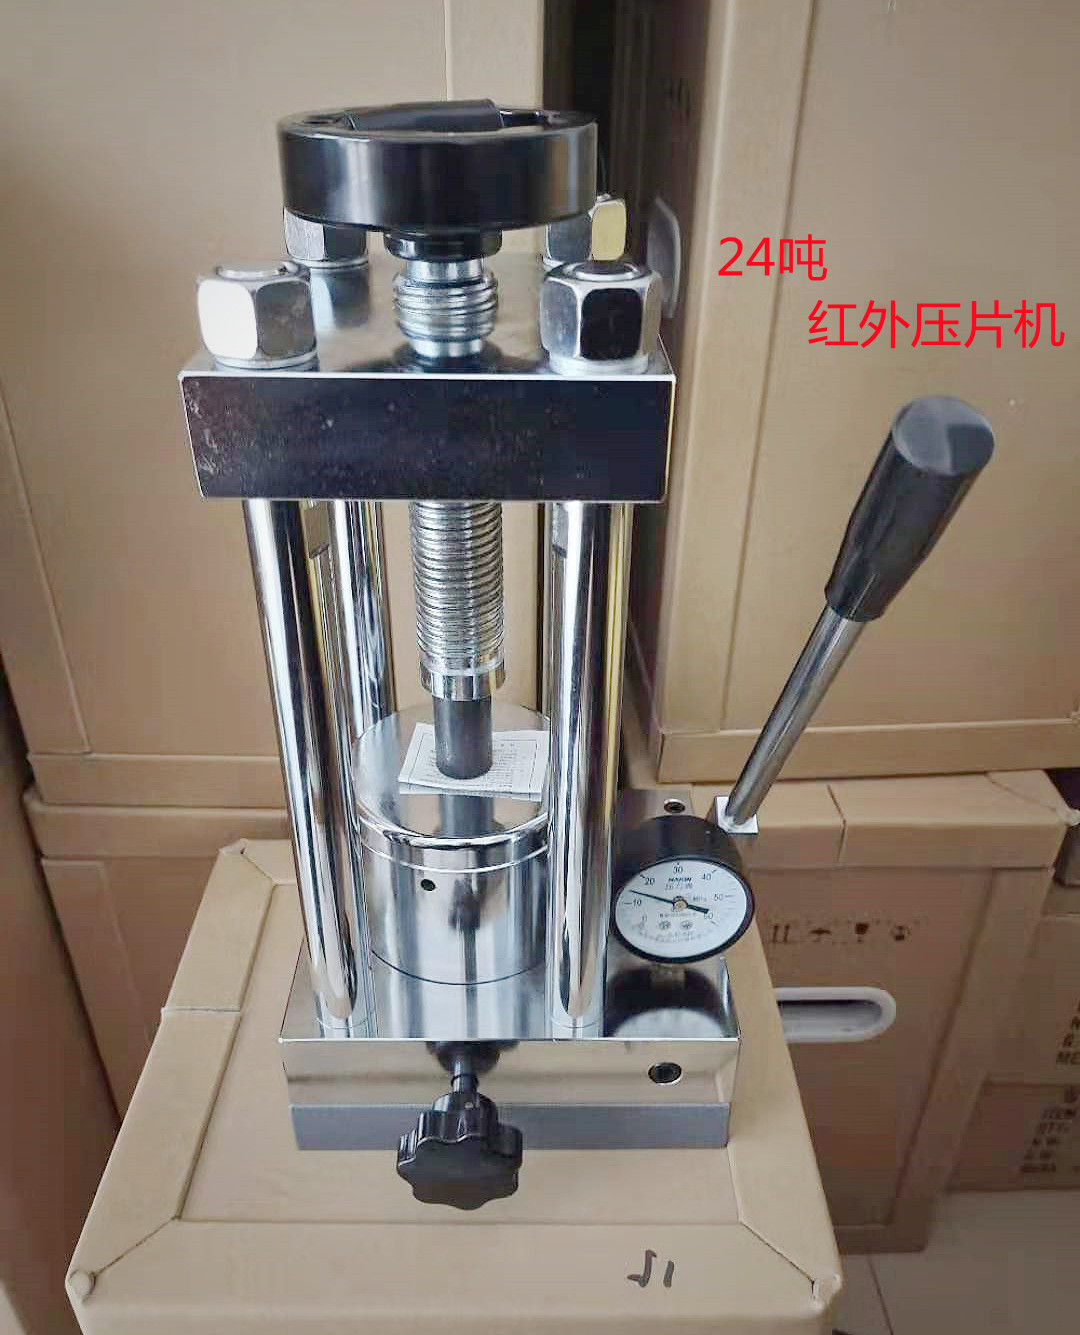 Fw-4a 30t infrared tablet pressing machine is used for pressing powder test pieces. Infrared tablet pressing mould Laboratory